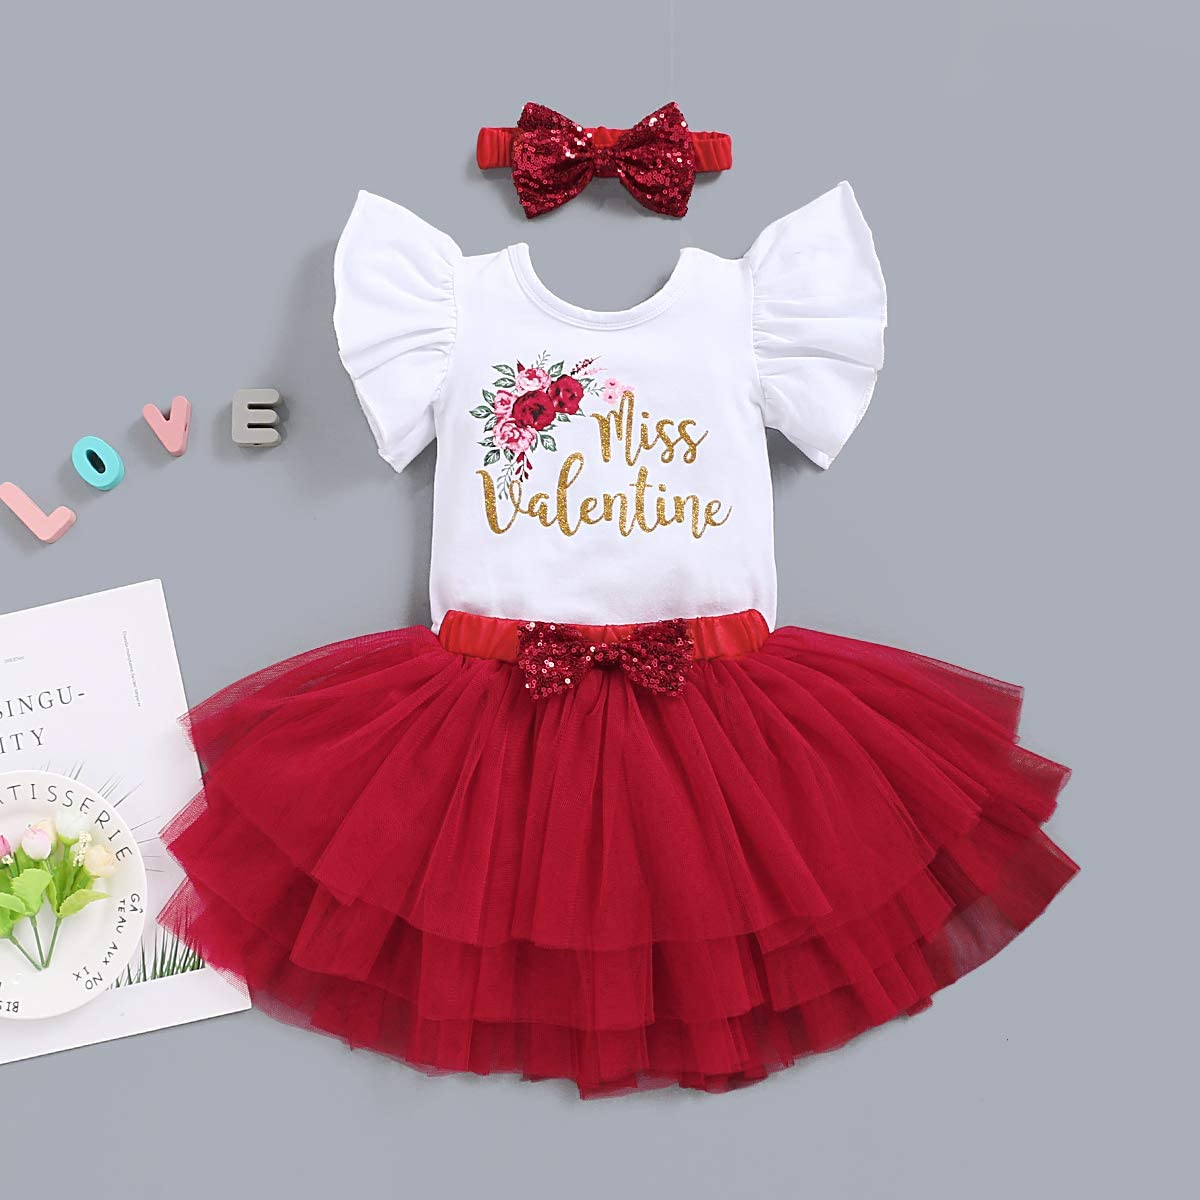 Tulle Tutu Skirt Headband Clothes Set Valentines Day Baby Girls Outfit Miss Valentine Ruffle Sleeve Romper